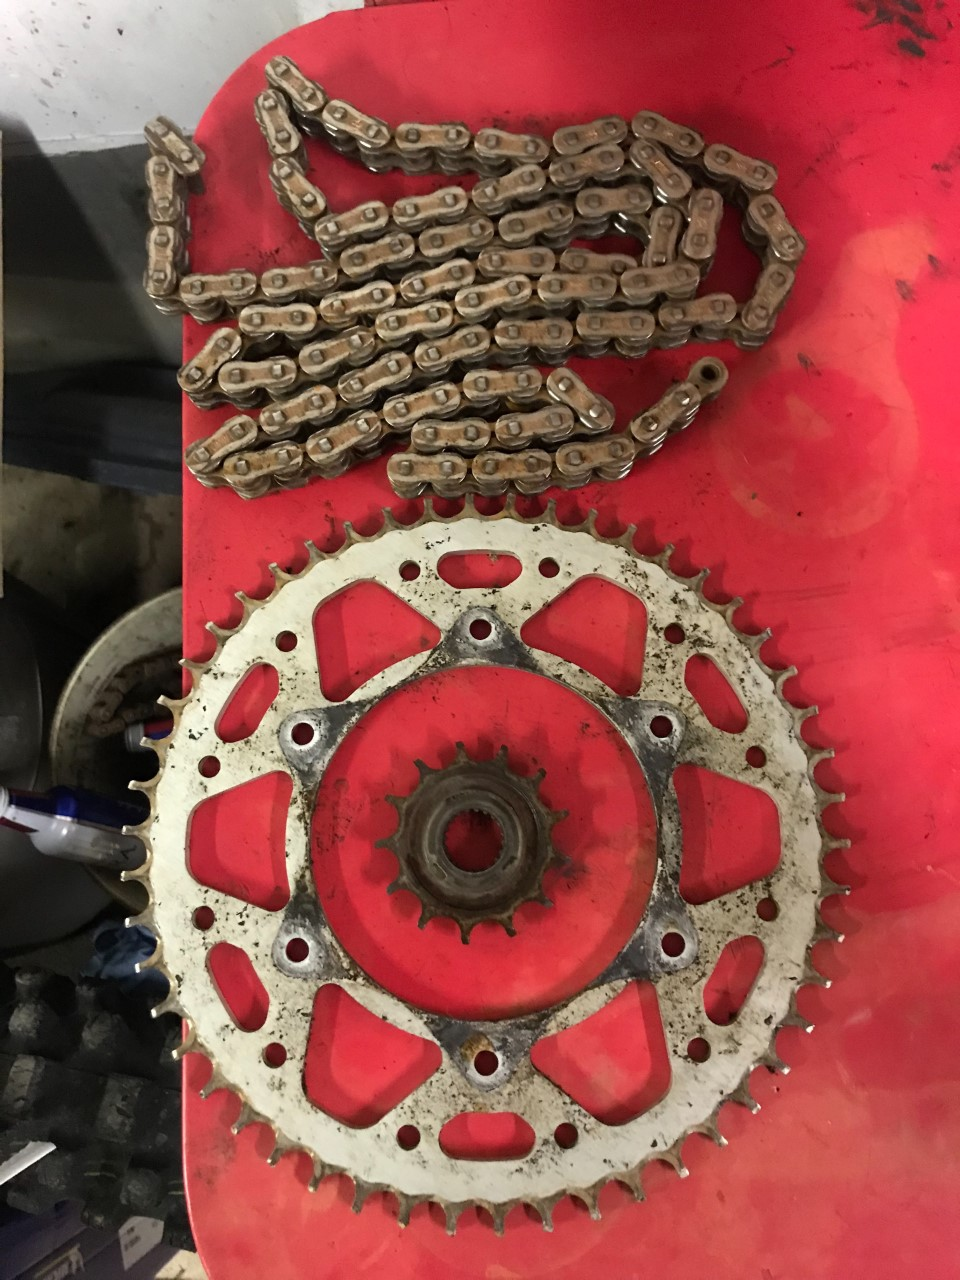 chain-and-sprockets.jpg